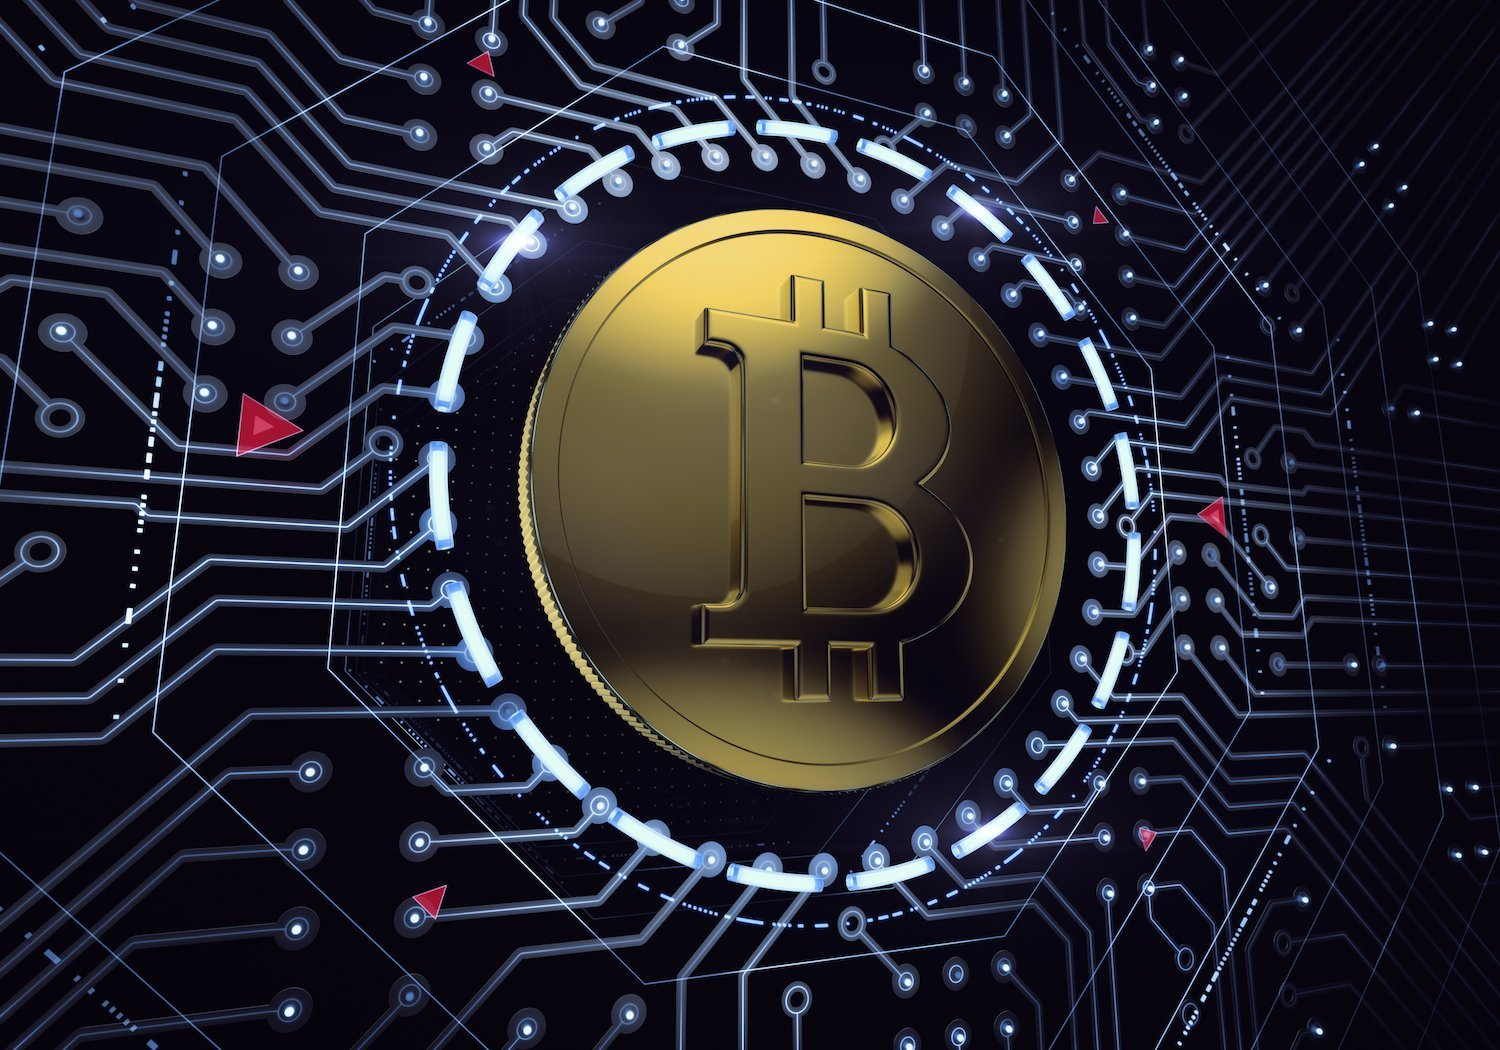 The bitcoin futures products are coming the bitcoin futures products are coming cboe bitcoin futures start trade date is on 121017 cme group bitcoin futures start trade date is on 121817 biocorpaavc Choice Image